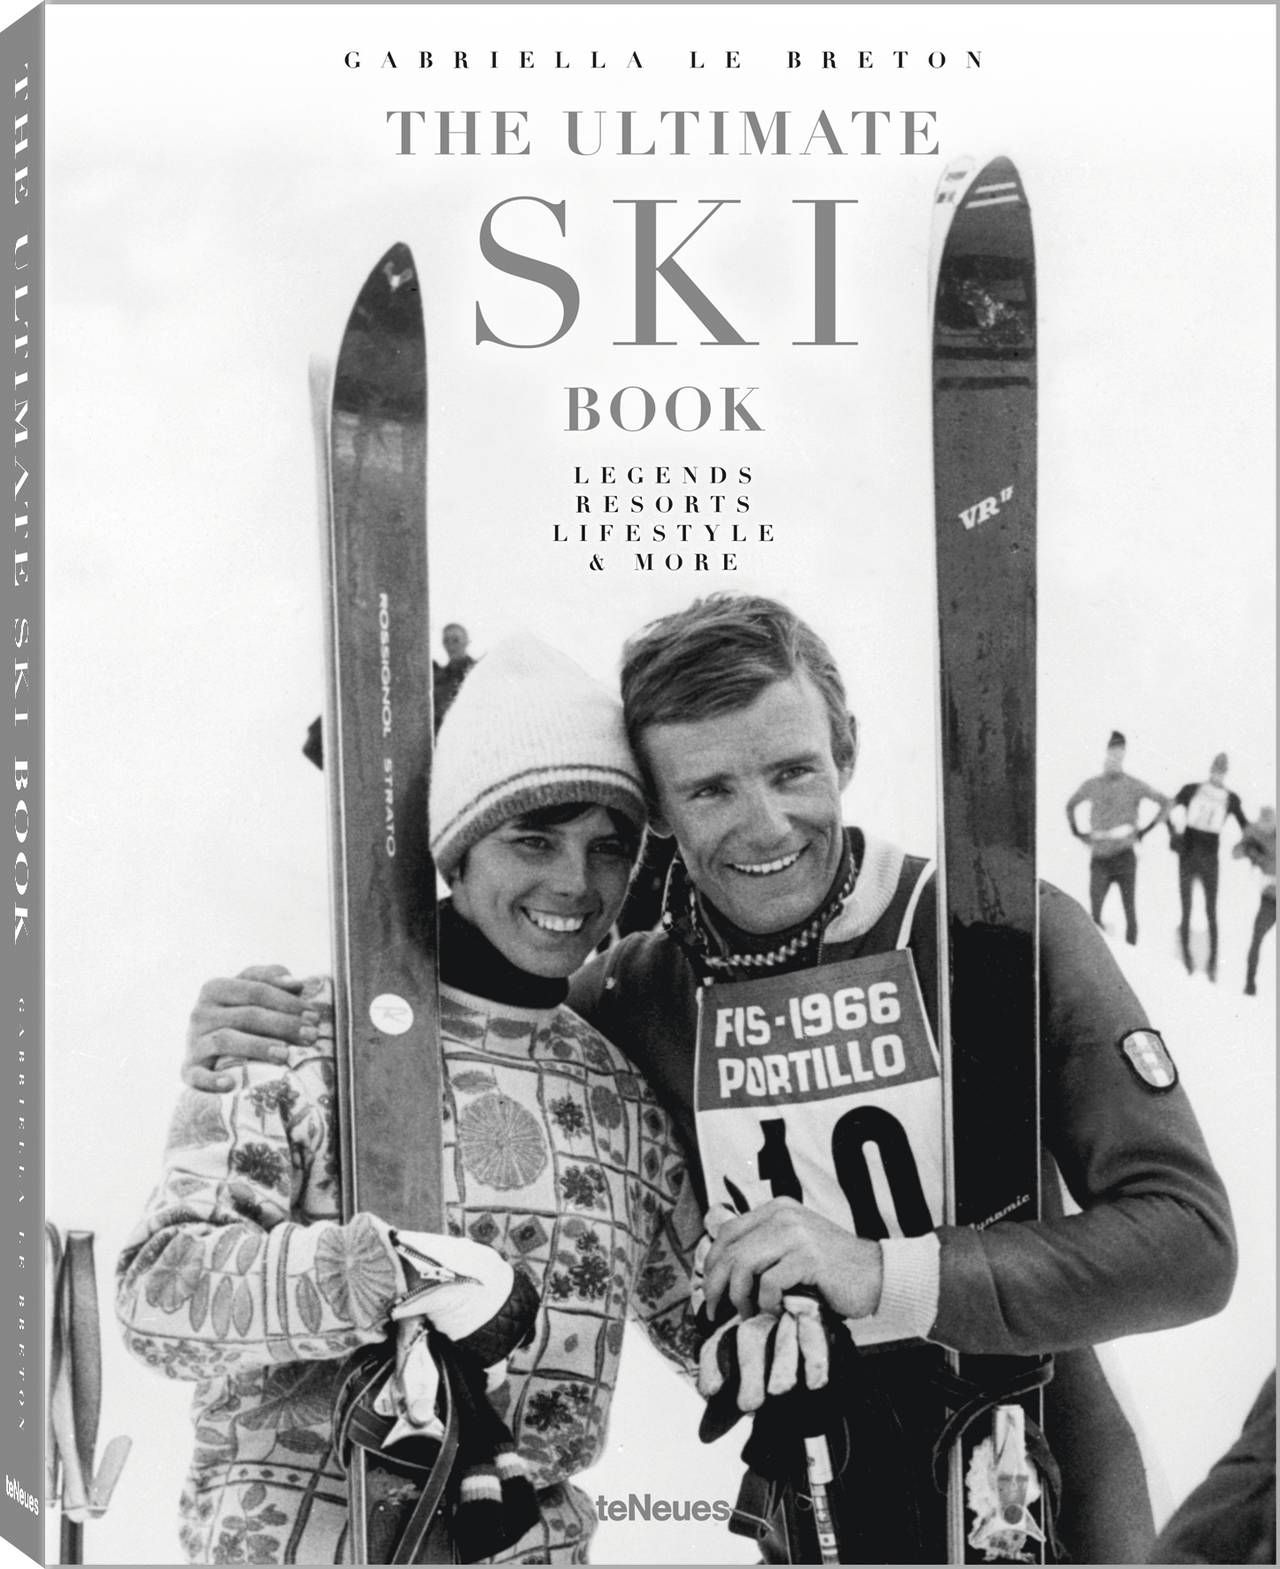 © The Ultimate Ski Book - Legends, Resorts, Lifestyle & More by Gabriella Le Breton, published by teNeues, www.teneues.com,  Jean-Claude Killy and Annie Famose at the Alpine Skiing World Championship in Portillo, Chile, 1966, Photo © AFP/Getty Images